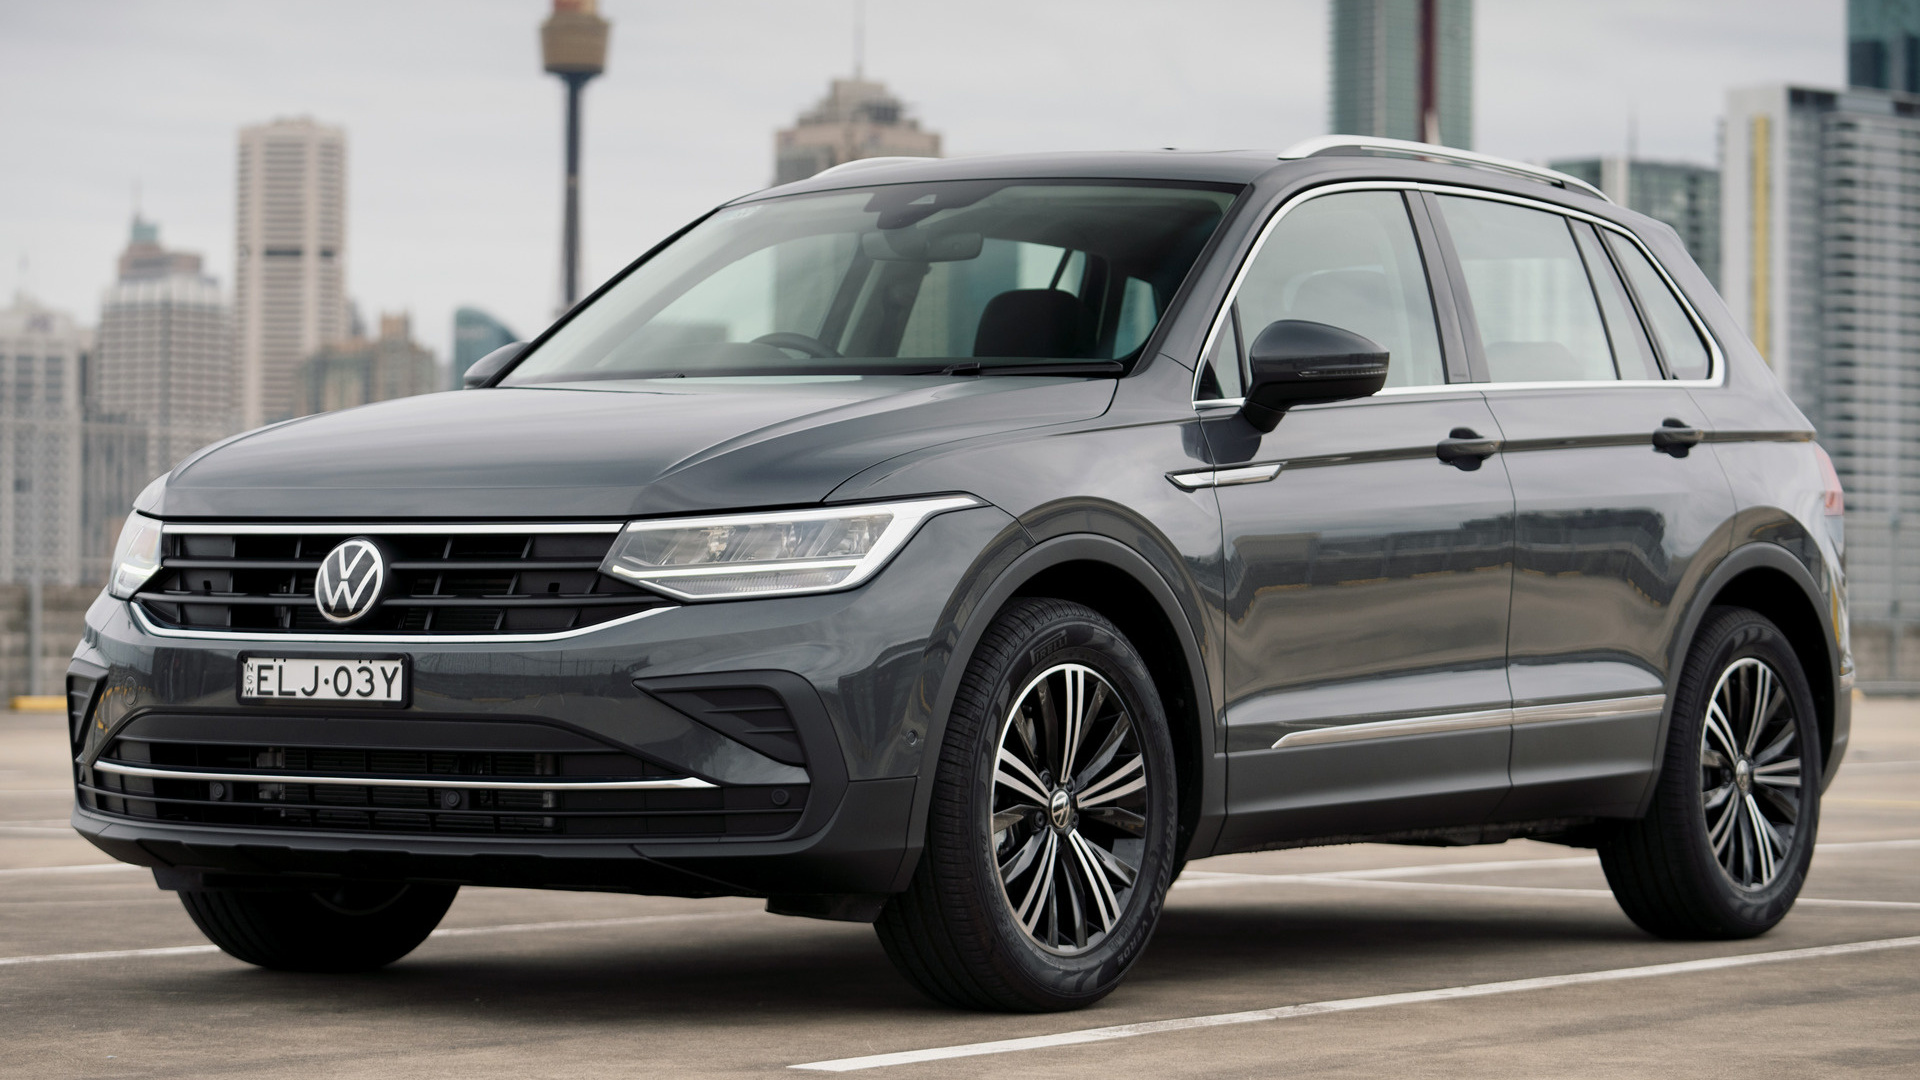 2021 Volkswagen Tiguan (AU) - Wallpapers and HD Images ...